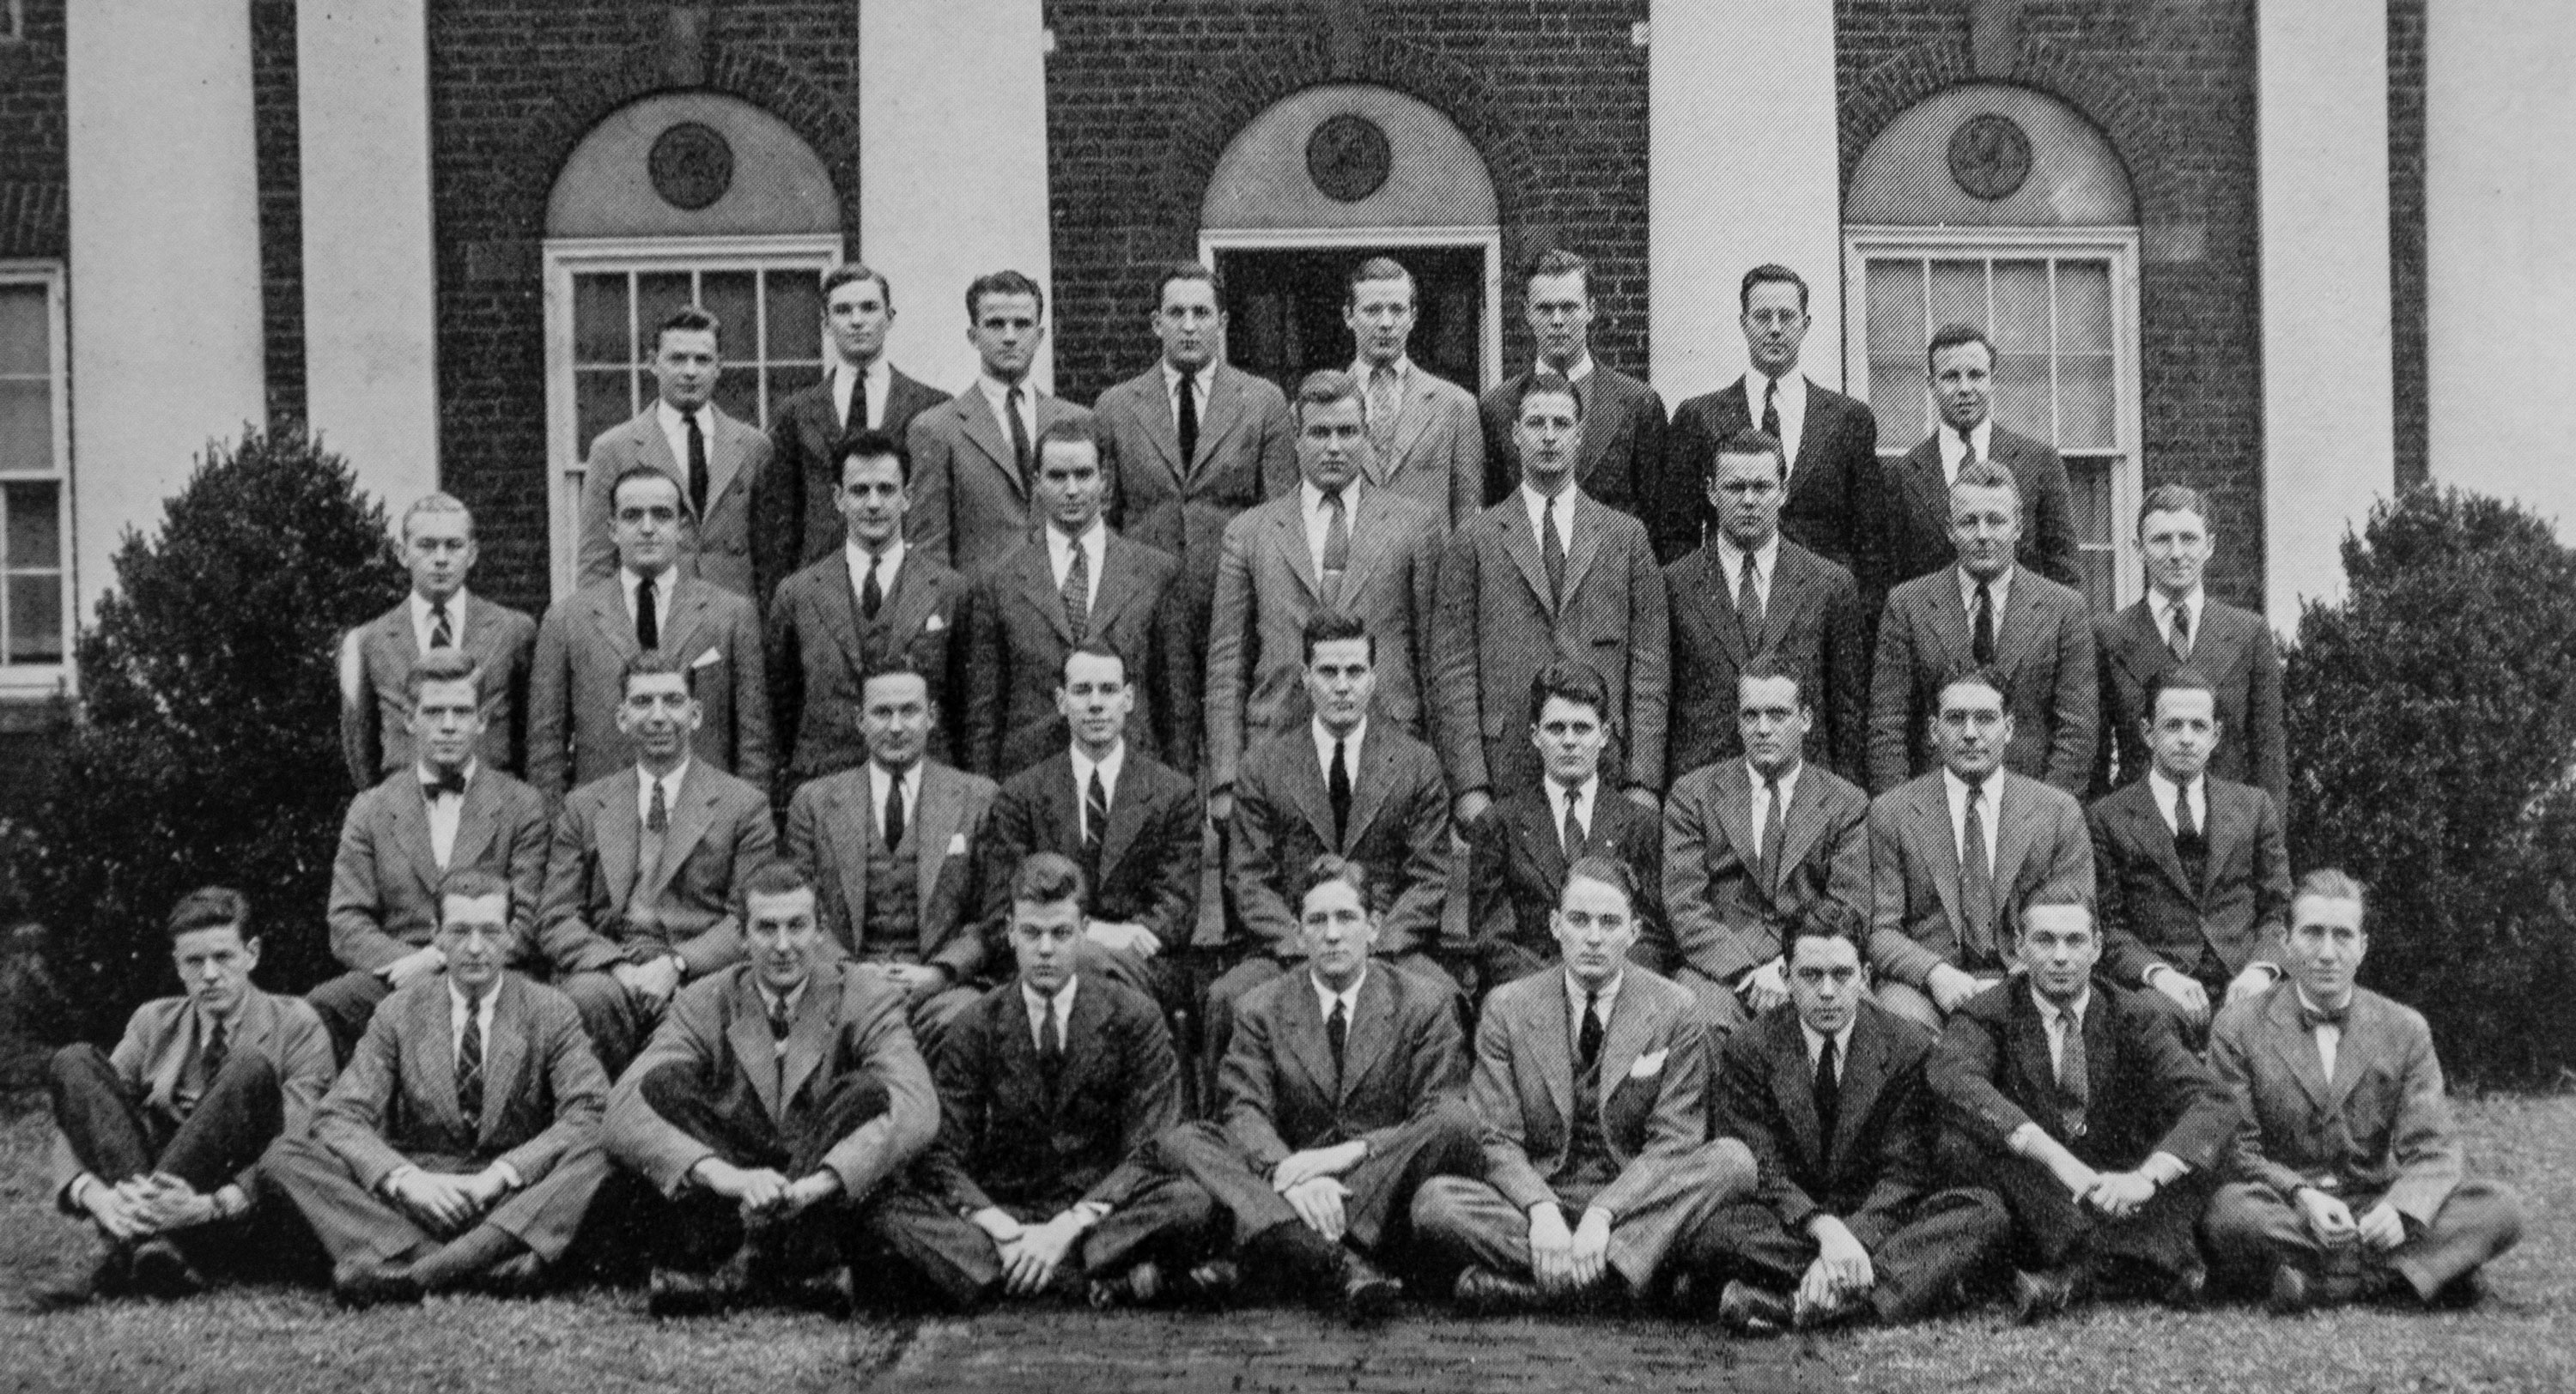 Gaver, fourth from right on the second row, was a member of the Kappa Sigma fraternity, pictured here in 1939. (Image: Corks and Curls)